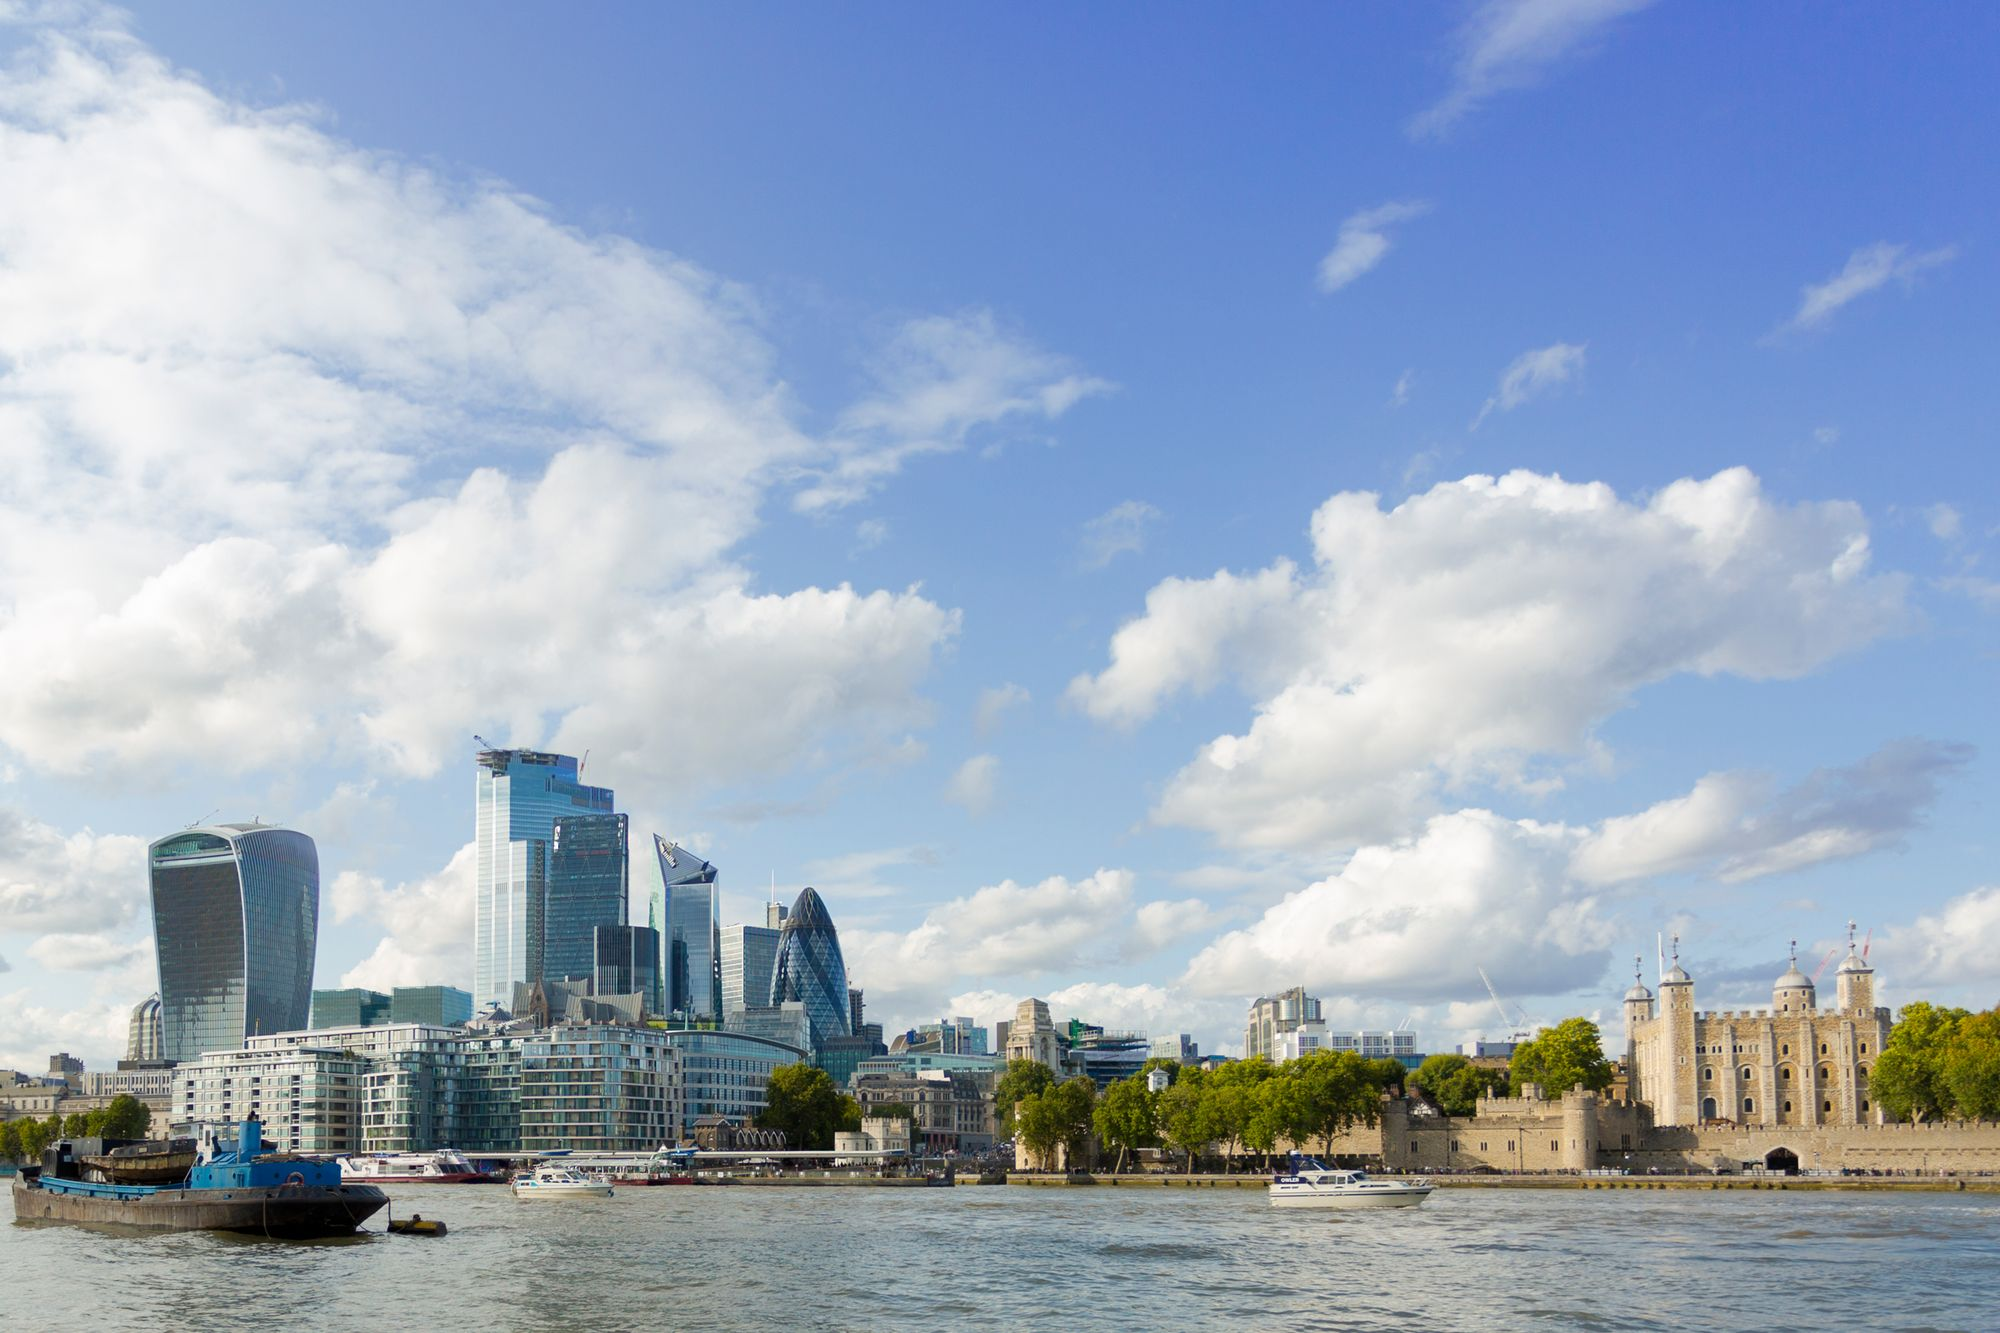 (Left) The City of London (Right) The Tower of London © Rajesh Taylor